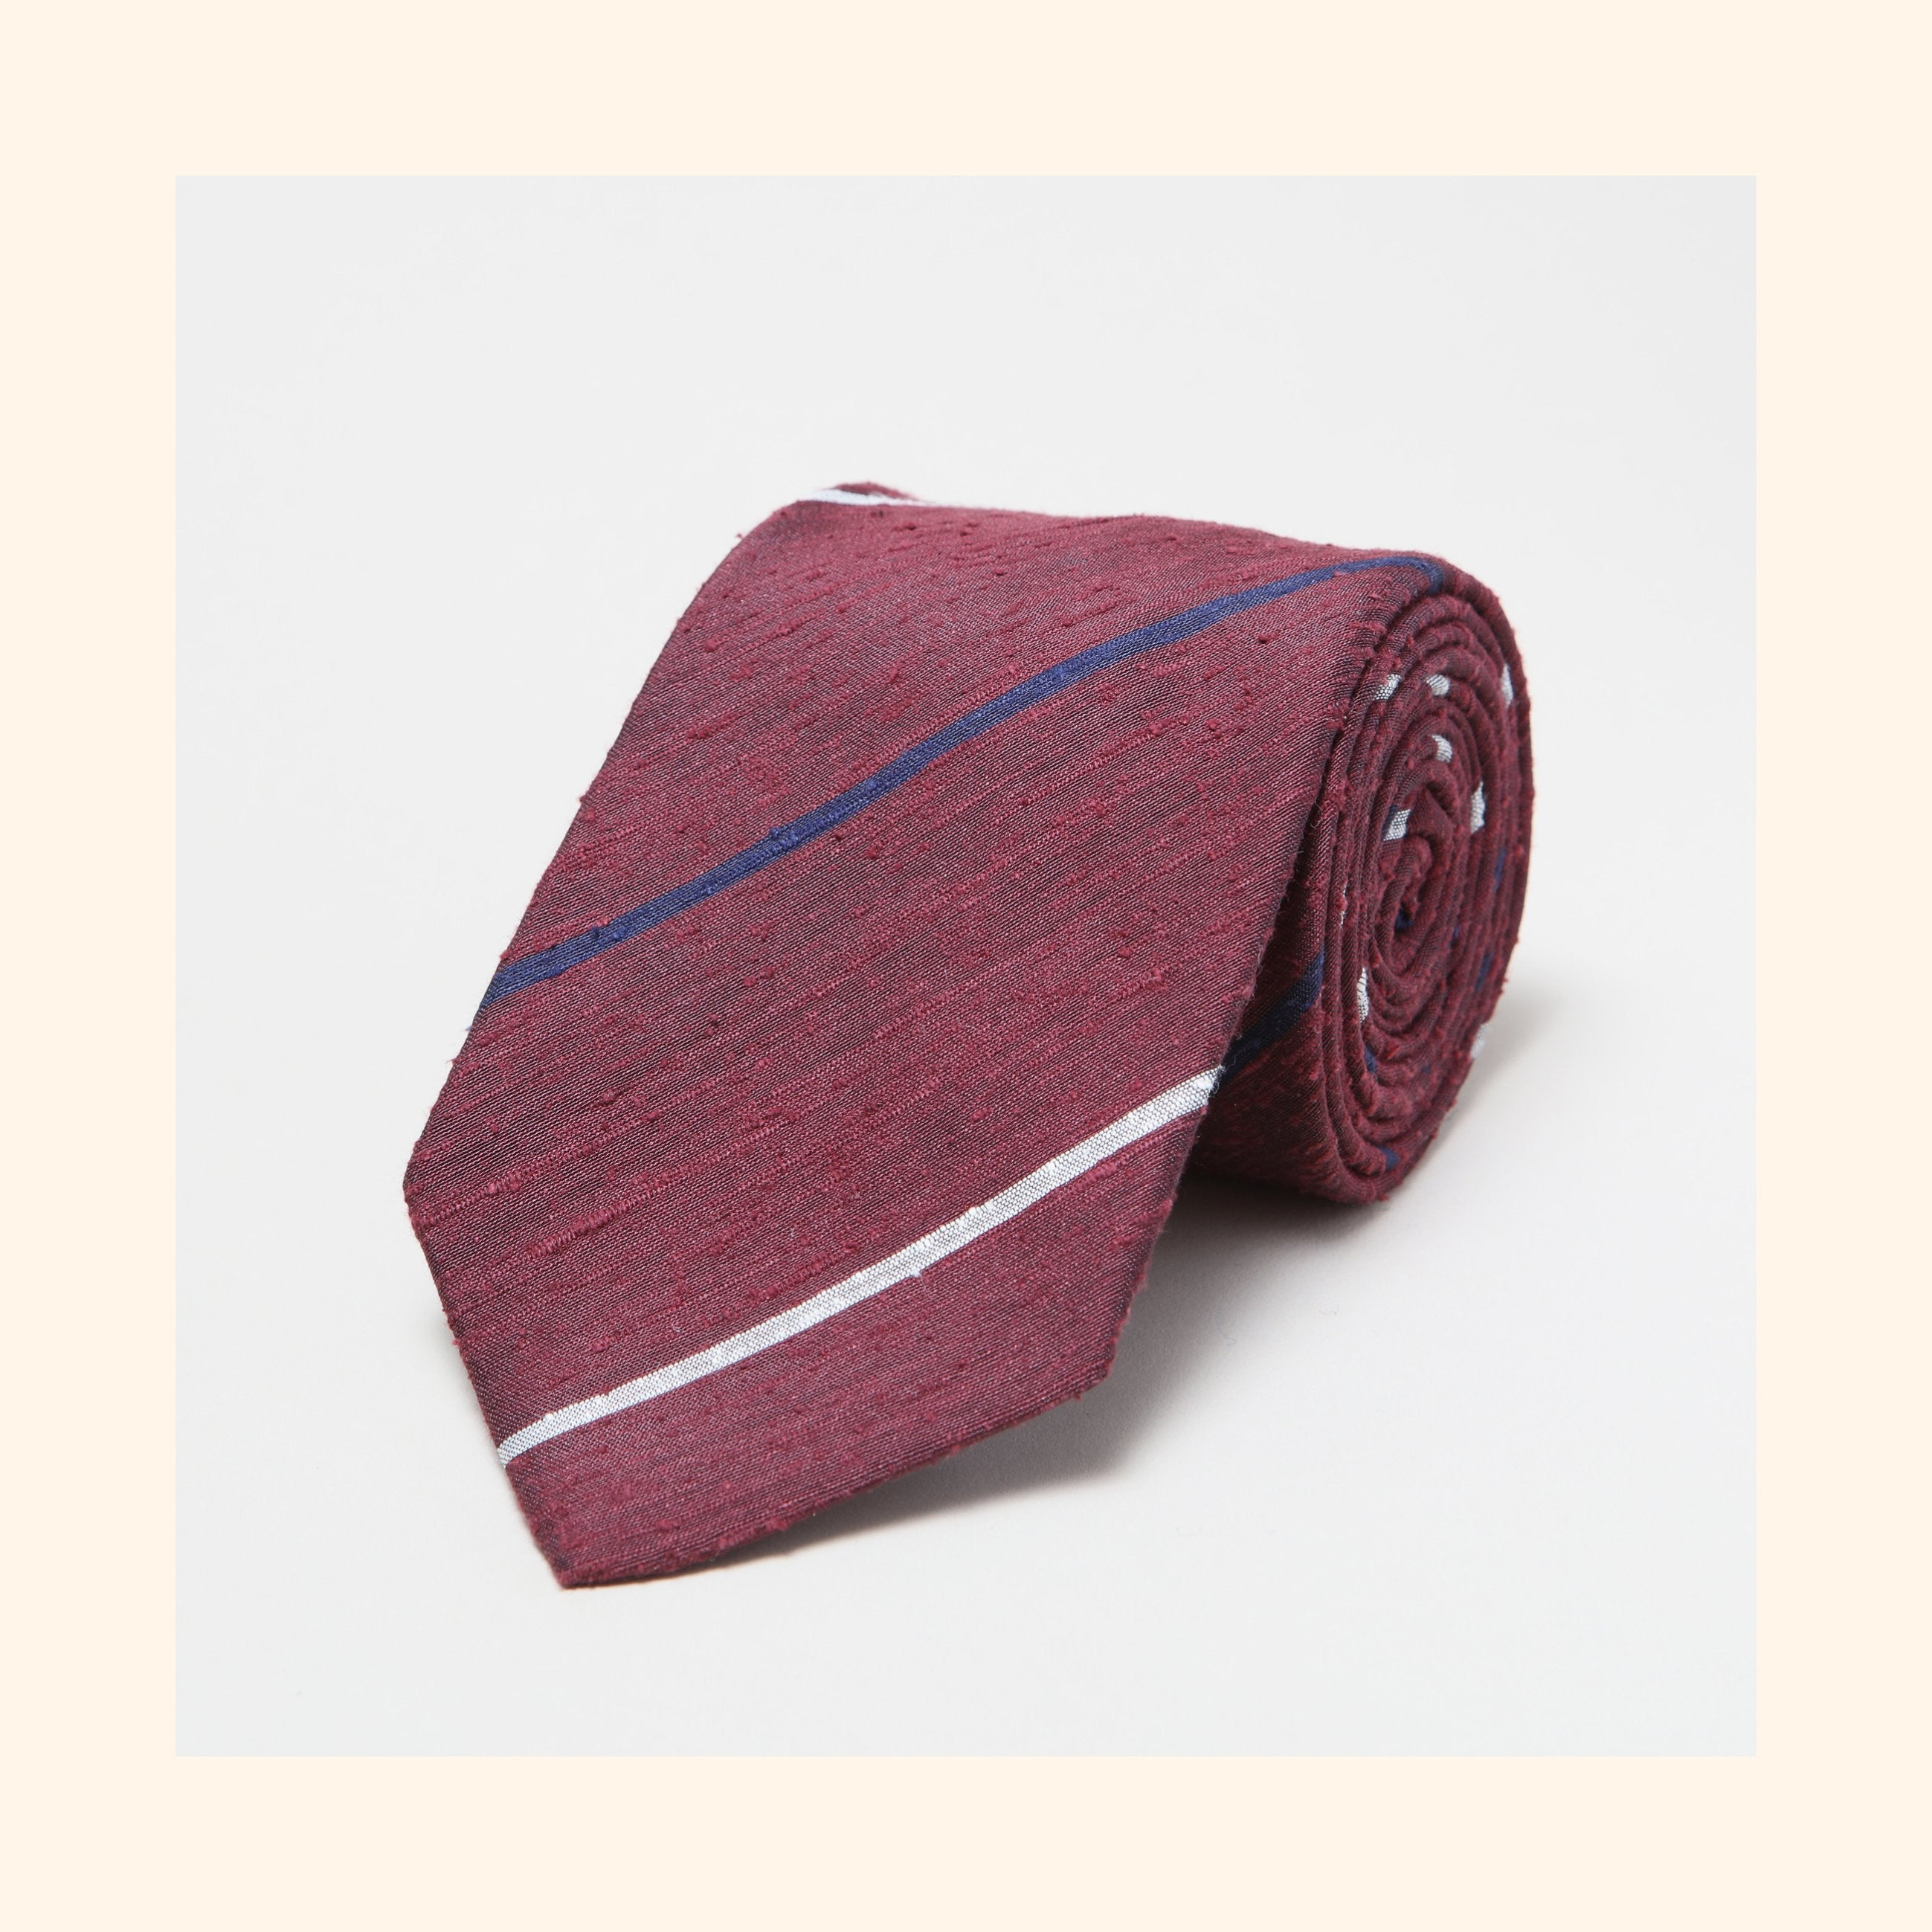 № 080 - Burgundy Navy/Ivory Alternate Stripe Shantung Silk Tie